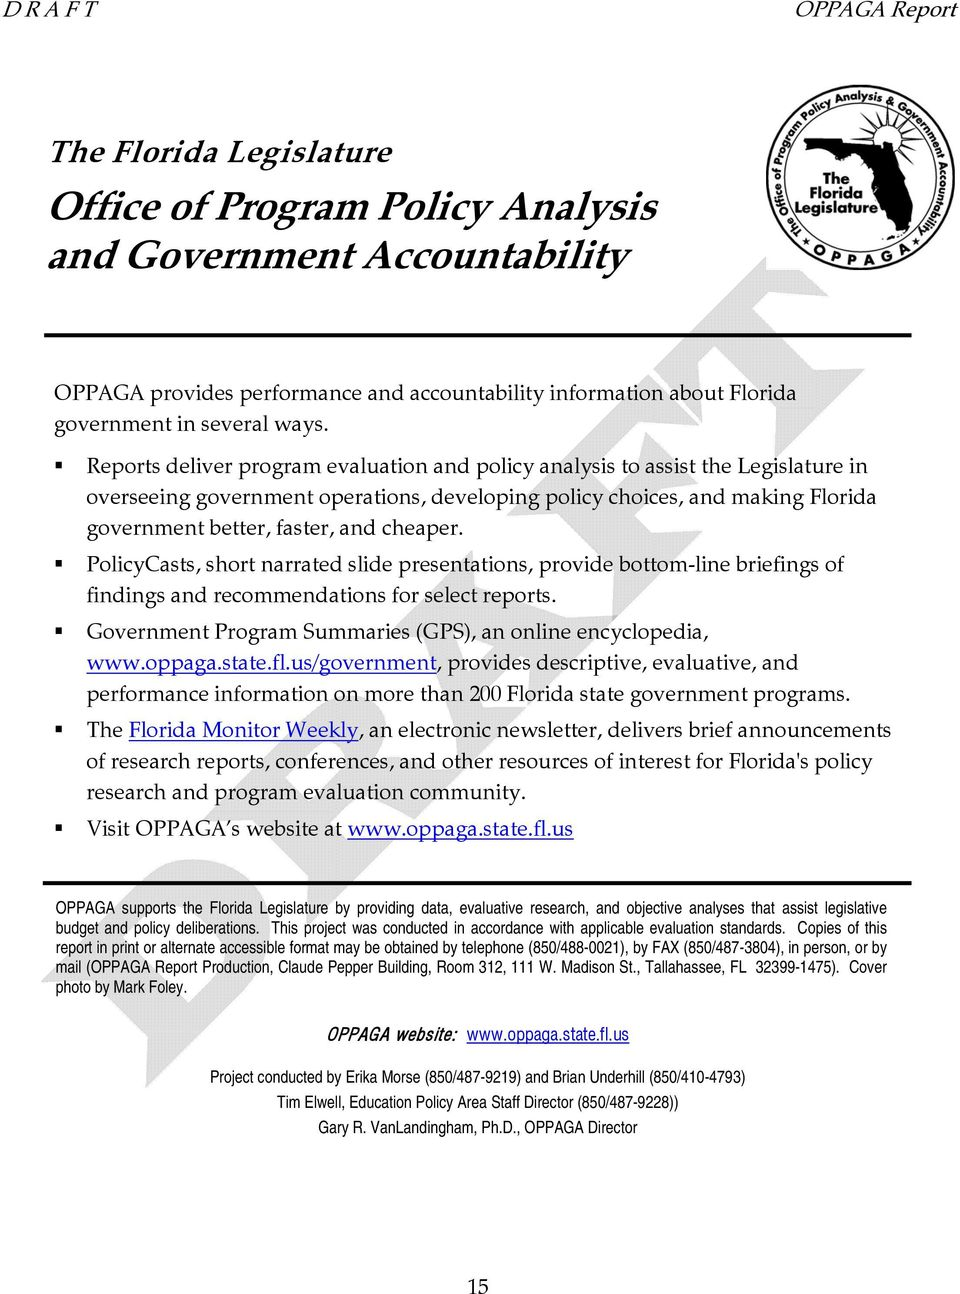 Reports deliver program evaluation and policy analysis to assist the Legislature in overseeing government operations, developing policy choices, and making Florida government better, faster, and